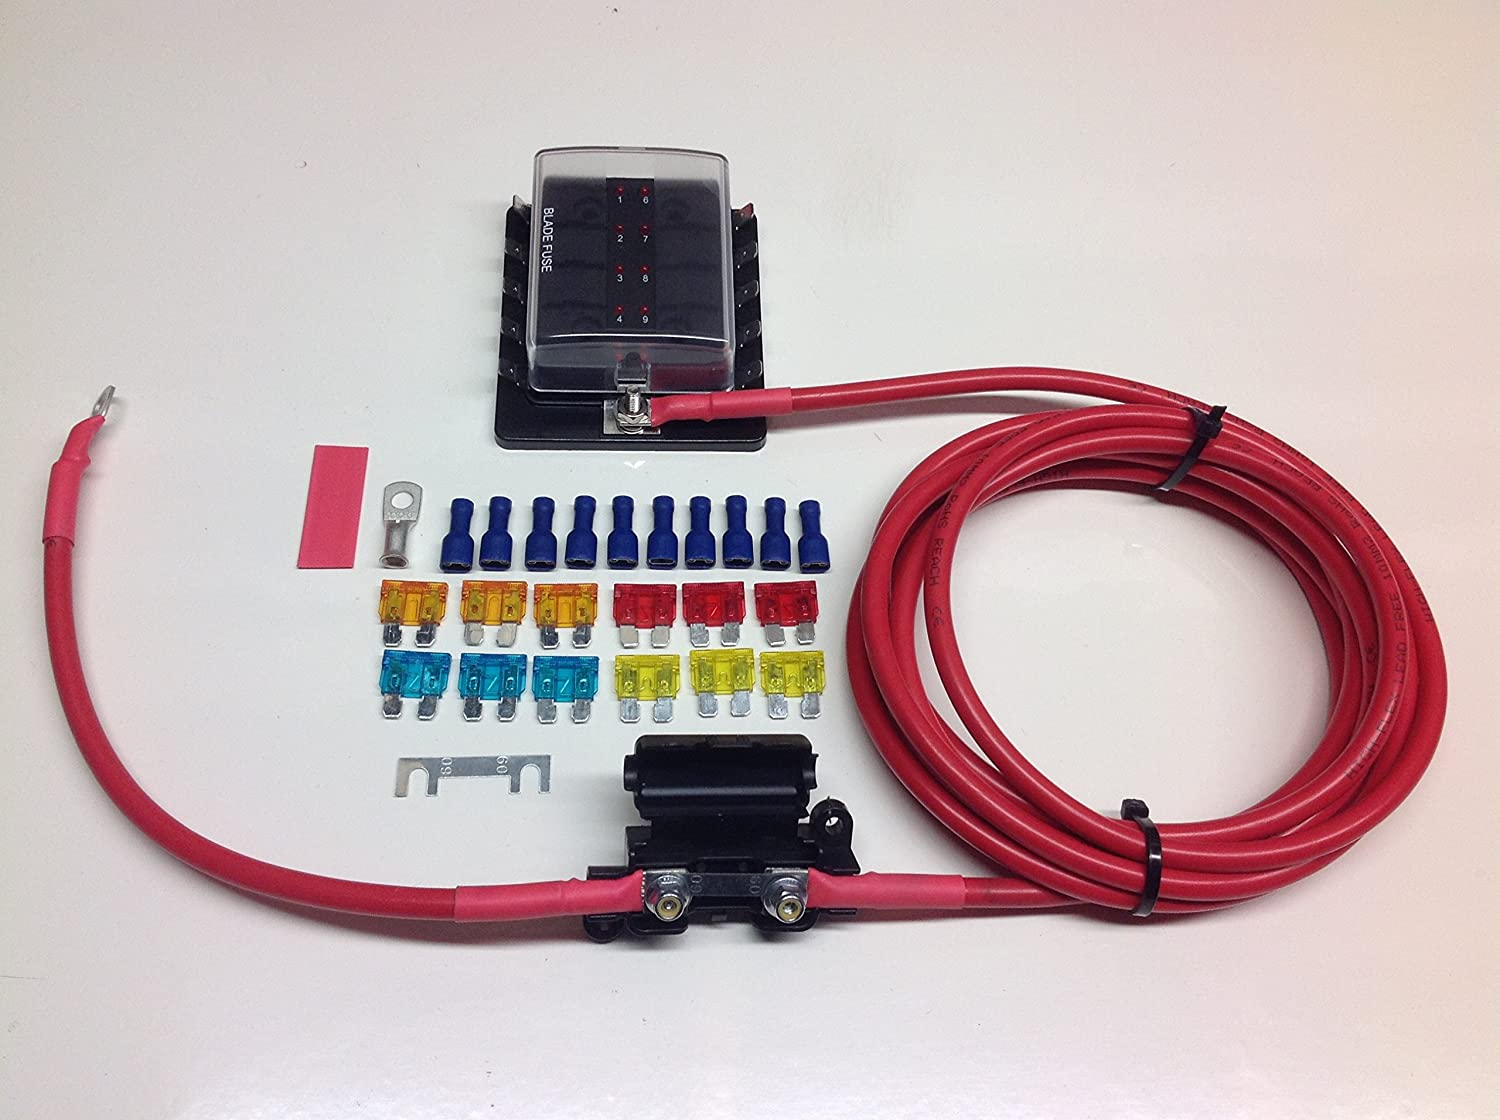 FB080//5 Fuse box distribution kit with ready made leads with 10-way fuse box 5mtr Kit